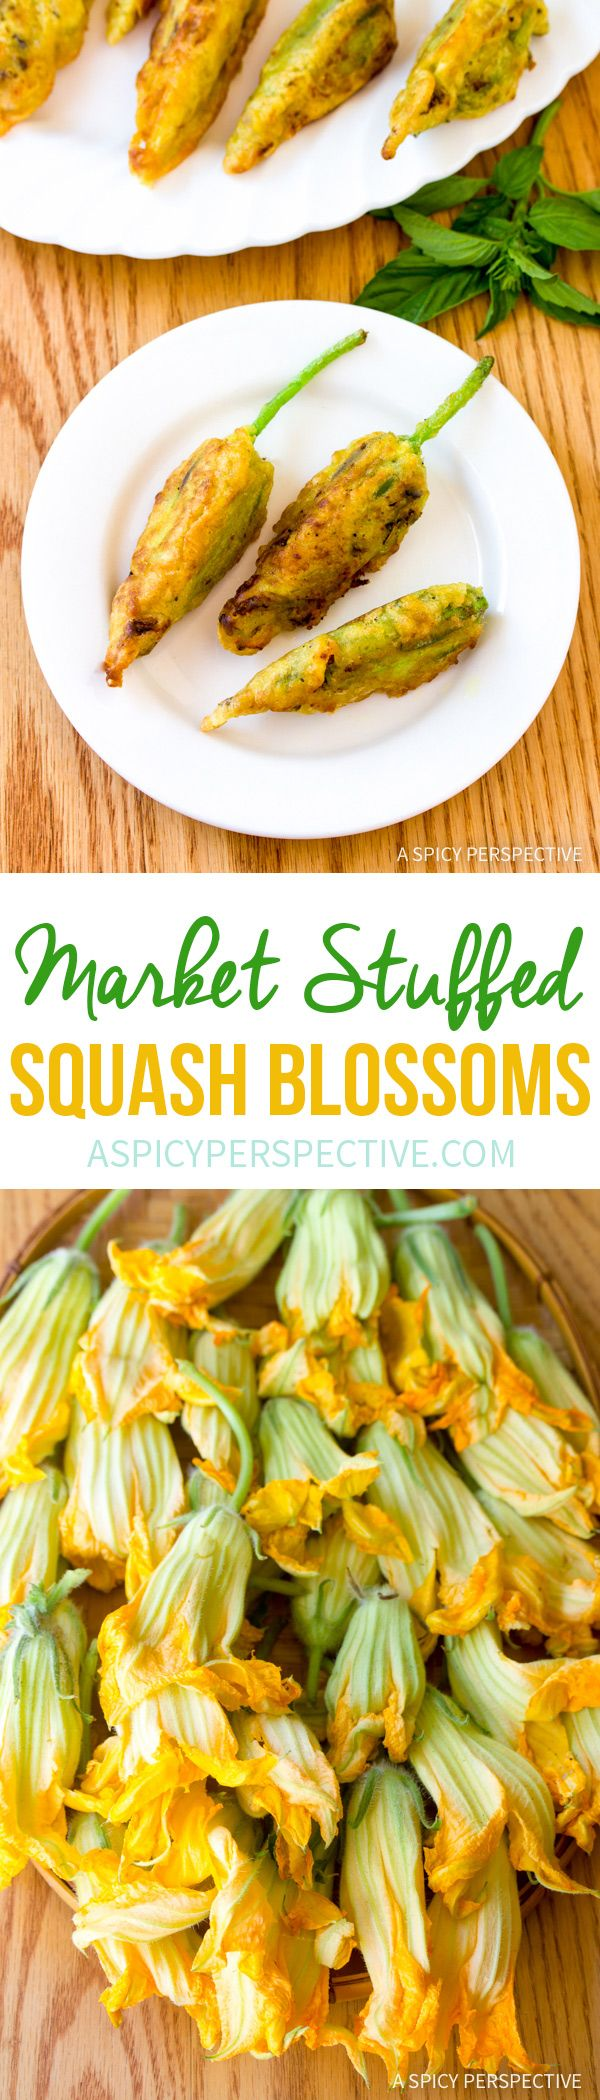 Fresh Market Stuffed Squash Blossoms Recipe via @spicyperspectiv